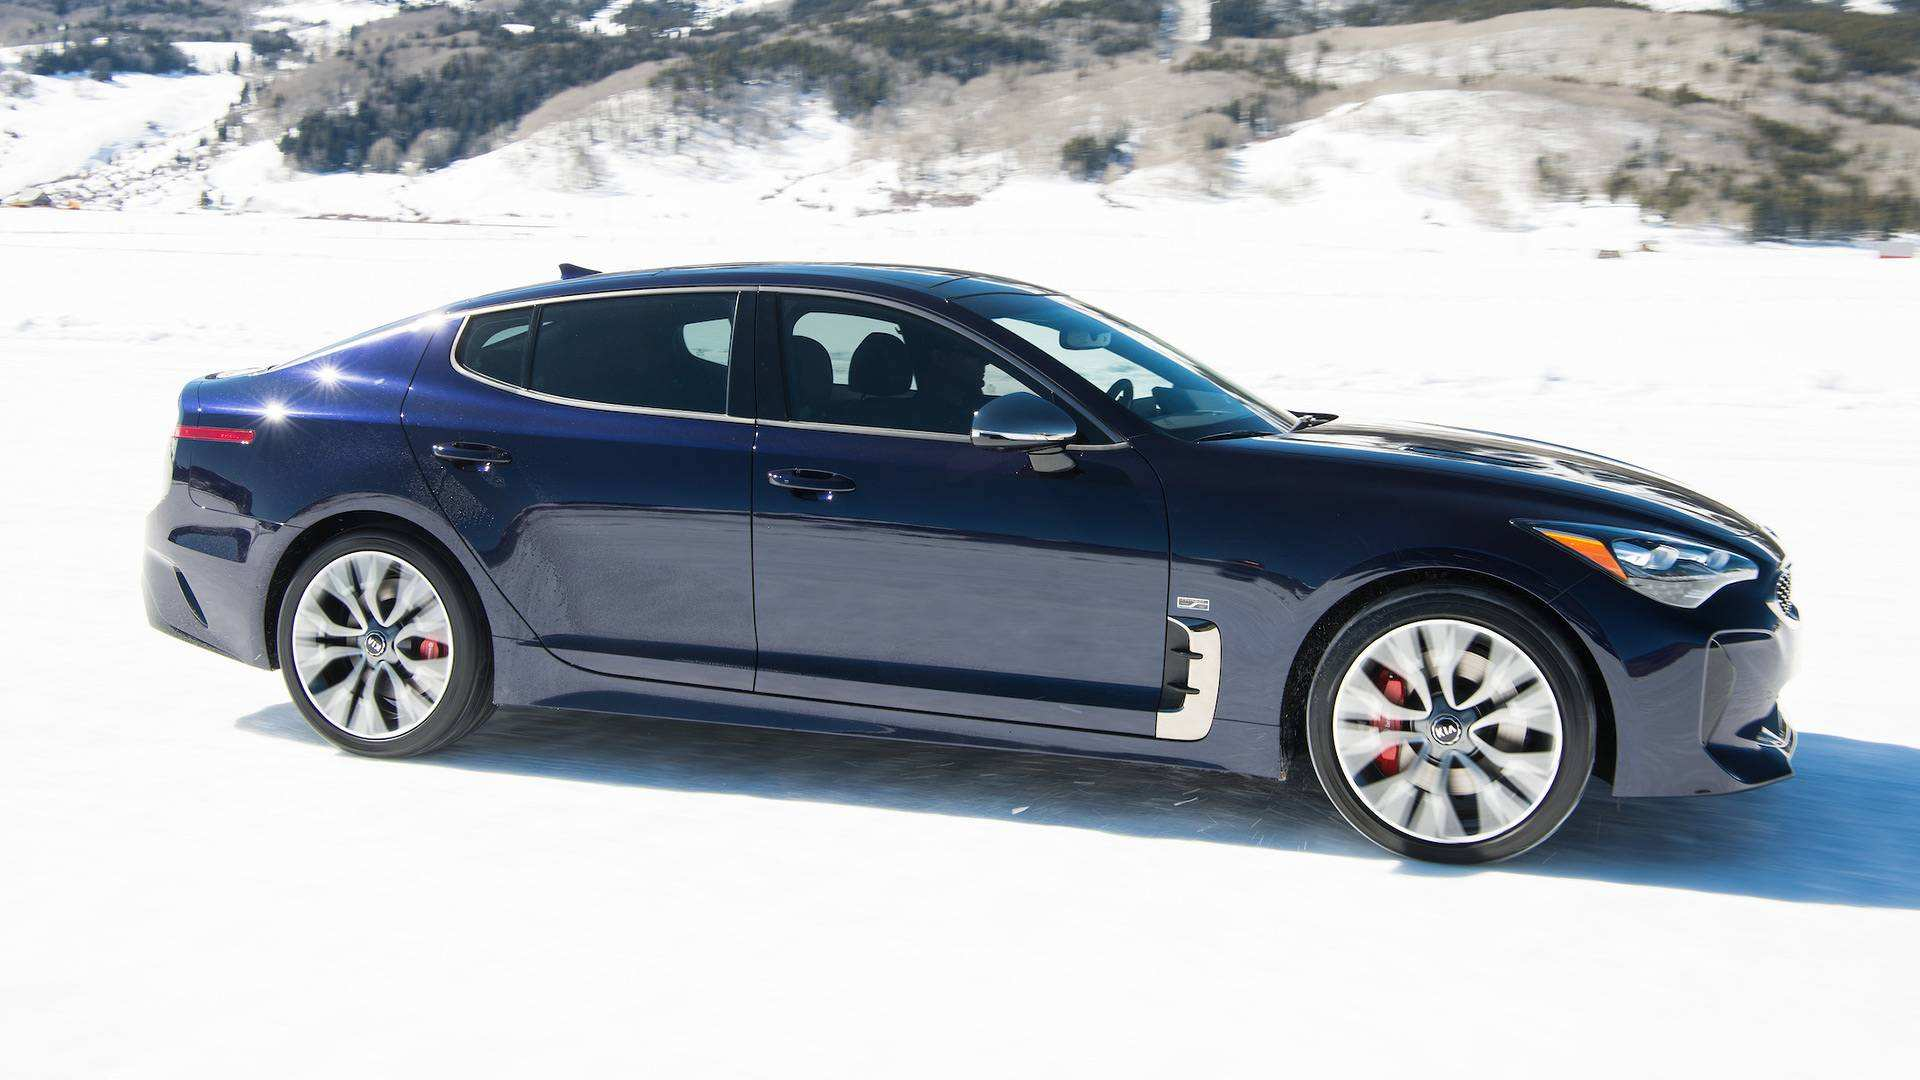 14 All New 2019 Kia Gt Stinger Photos with 2019 Kia Gt Stinger